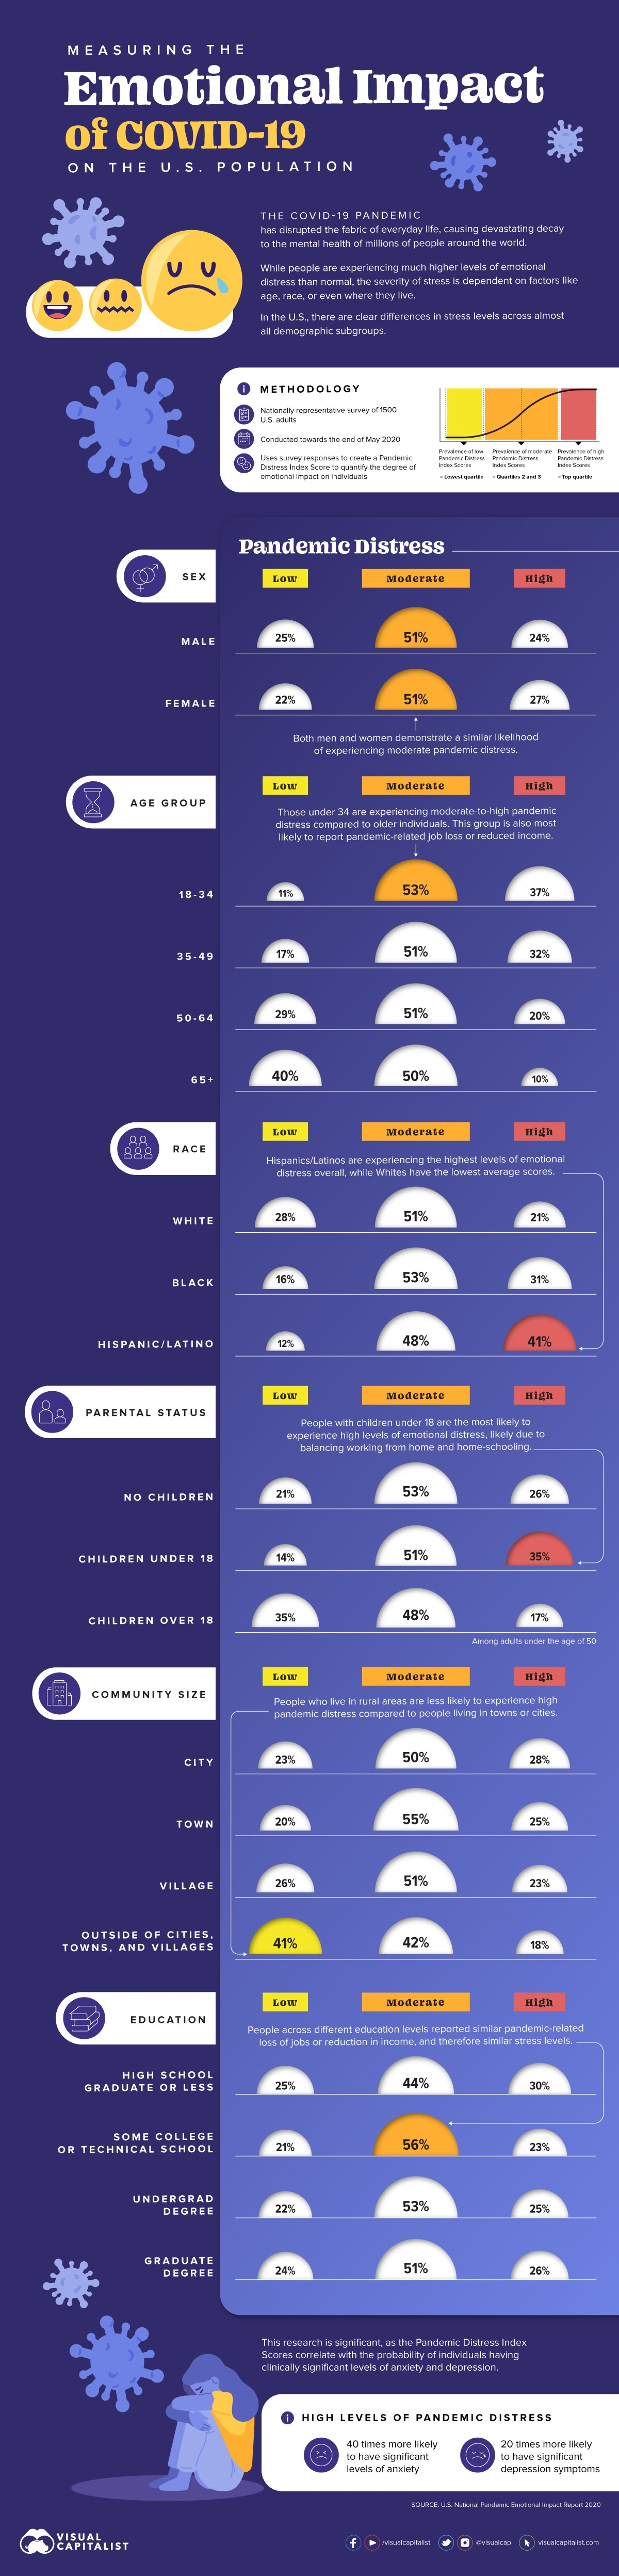 Measuring the Emotional Impact of COVID-19 on the U.S. Population #infographic